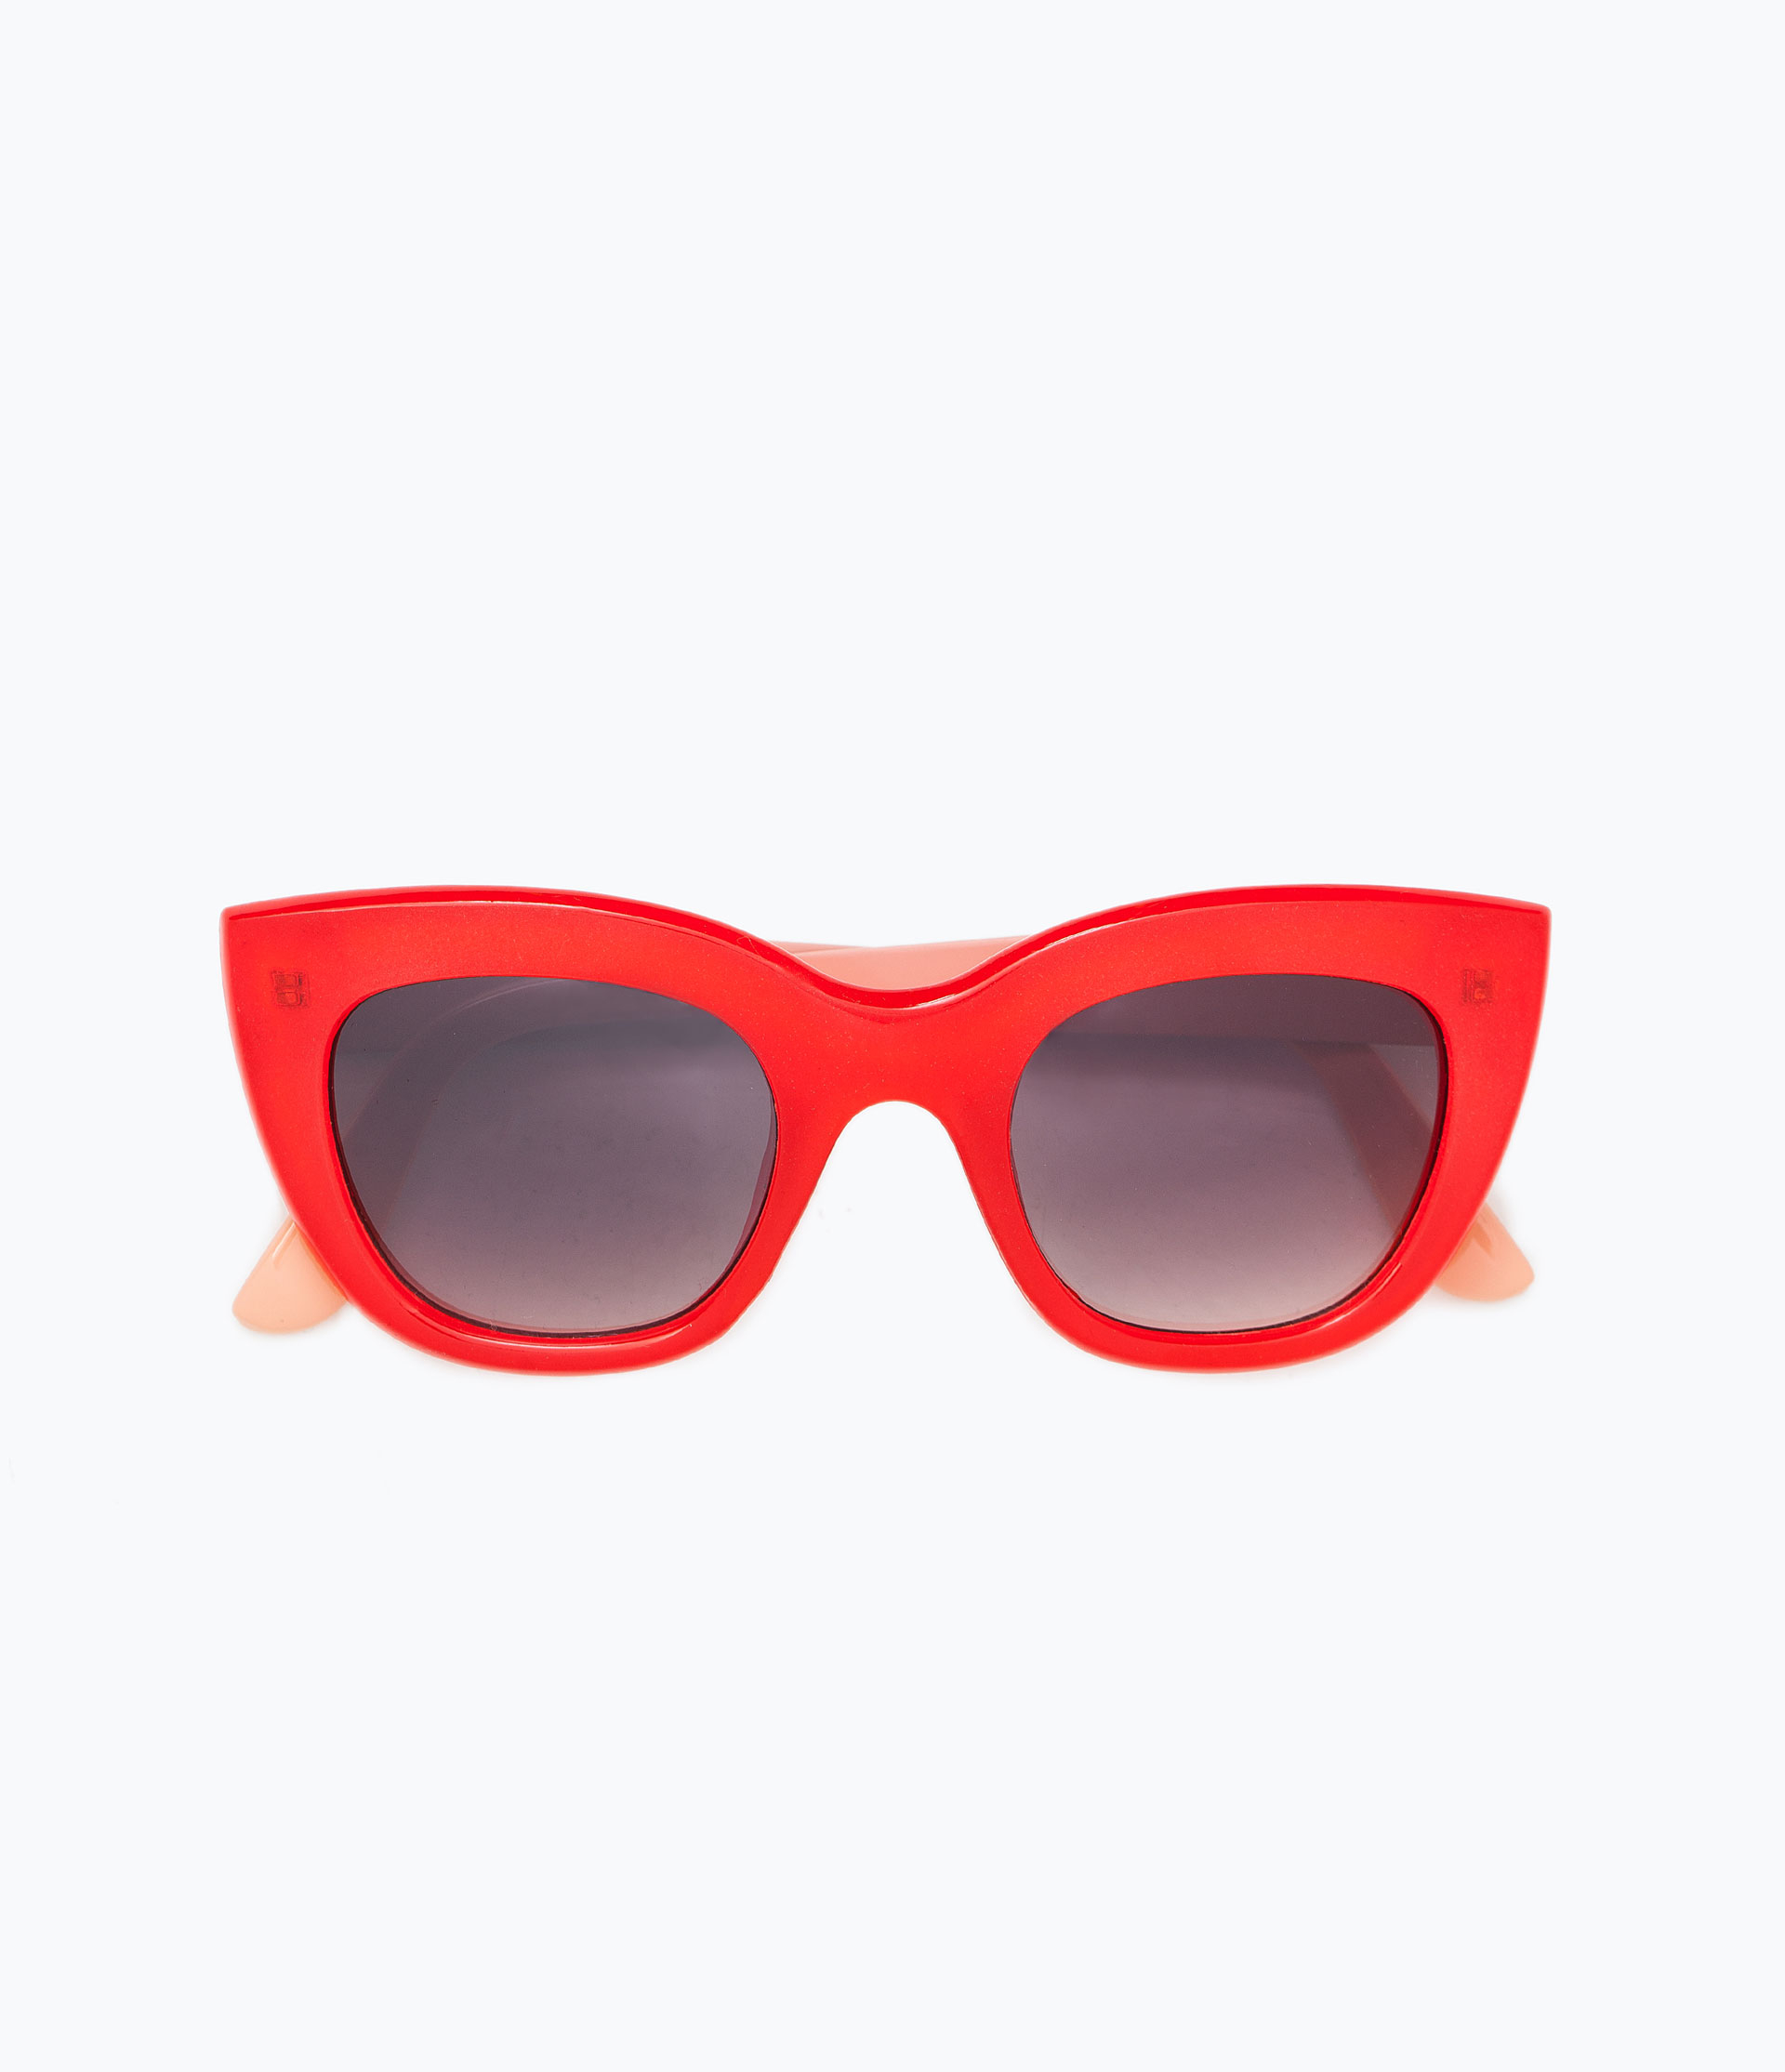 Zara Glasses Frames : Zara Red And Coral Resin Sunglasses in Red Lyst